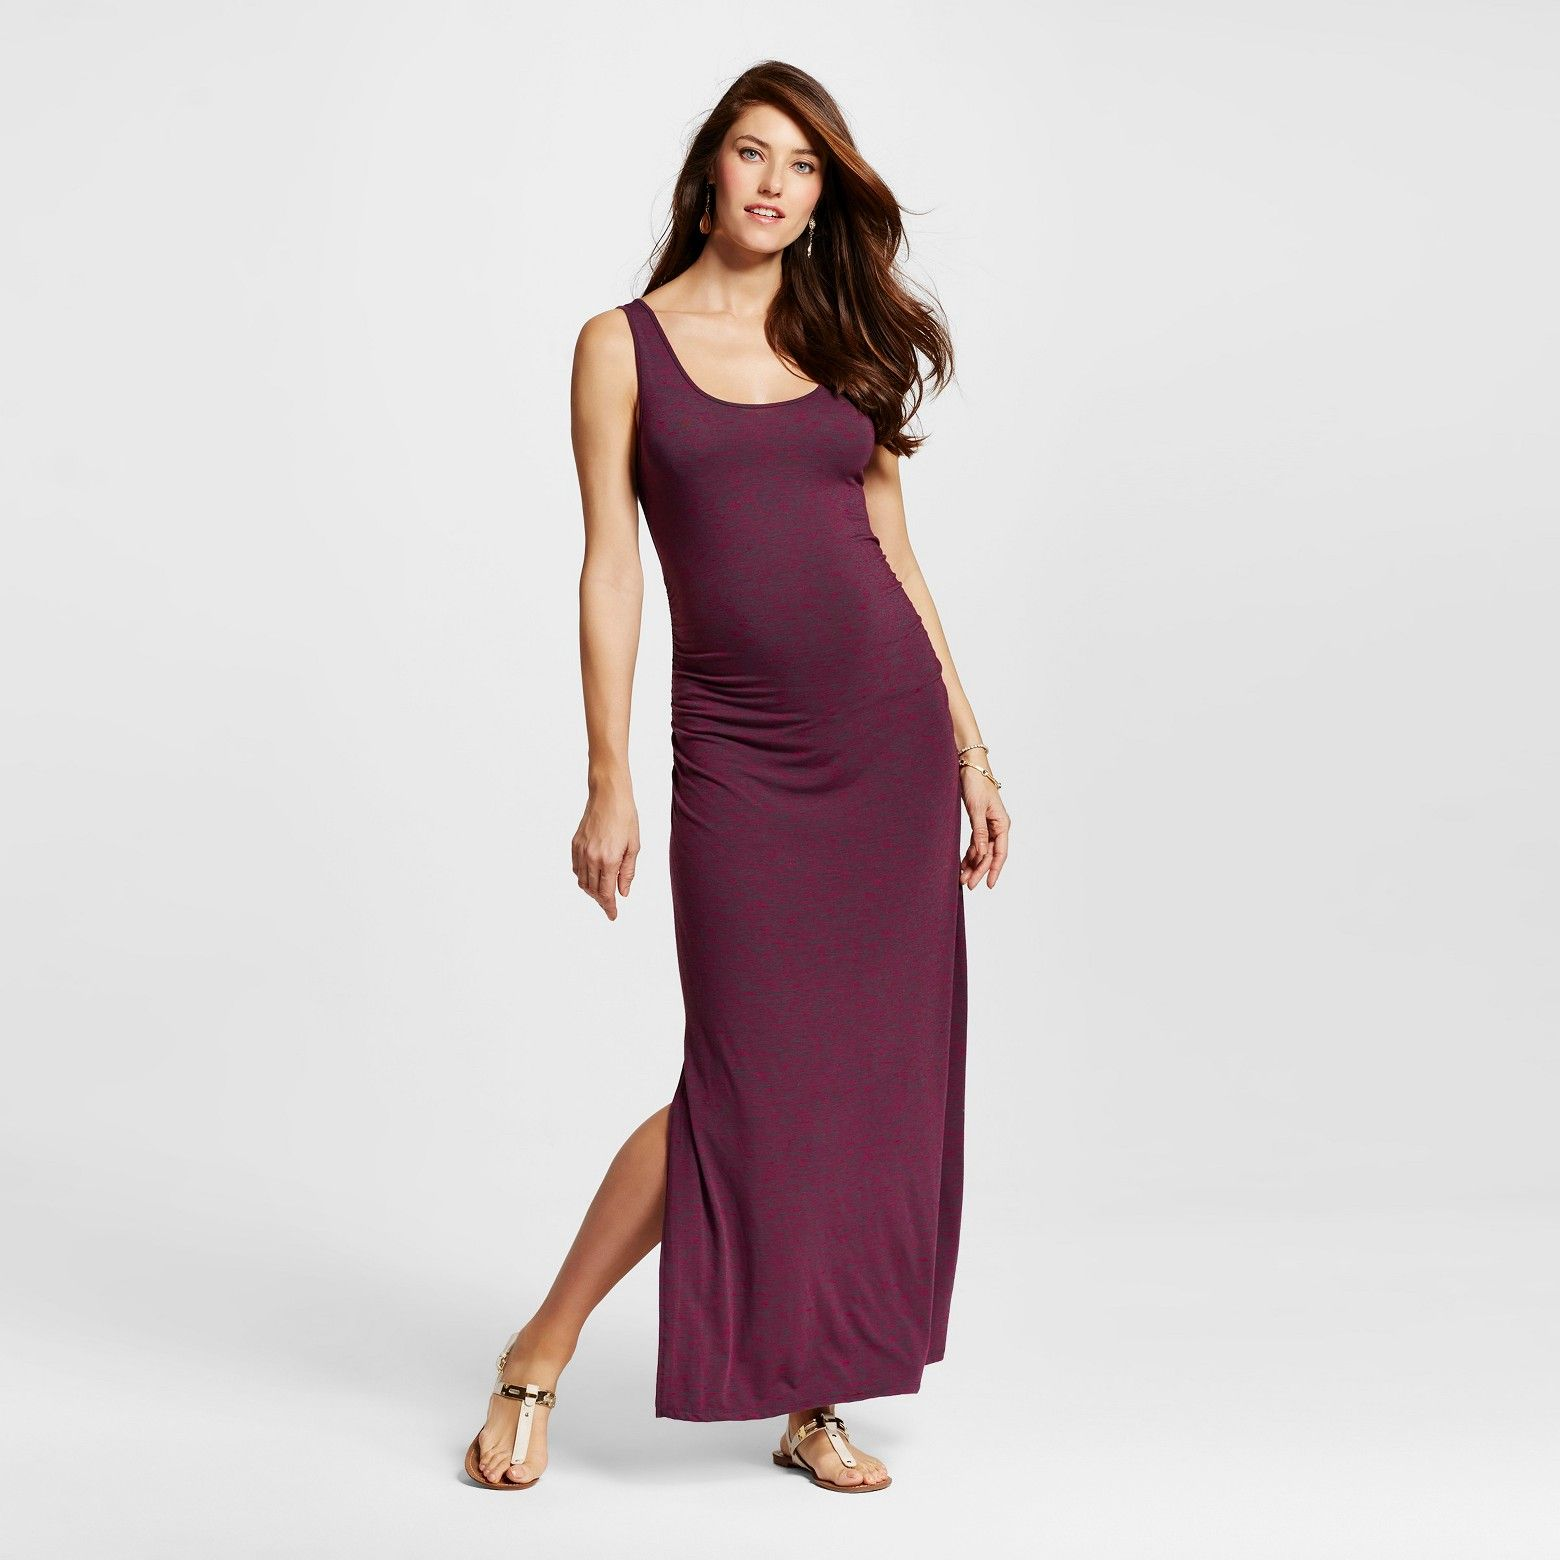 20 clearance at target burgundy maxi maternity dress 20 clearance at target burgundy maxi maternity dress ombrellifo Images